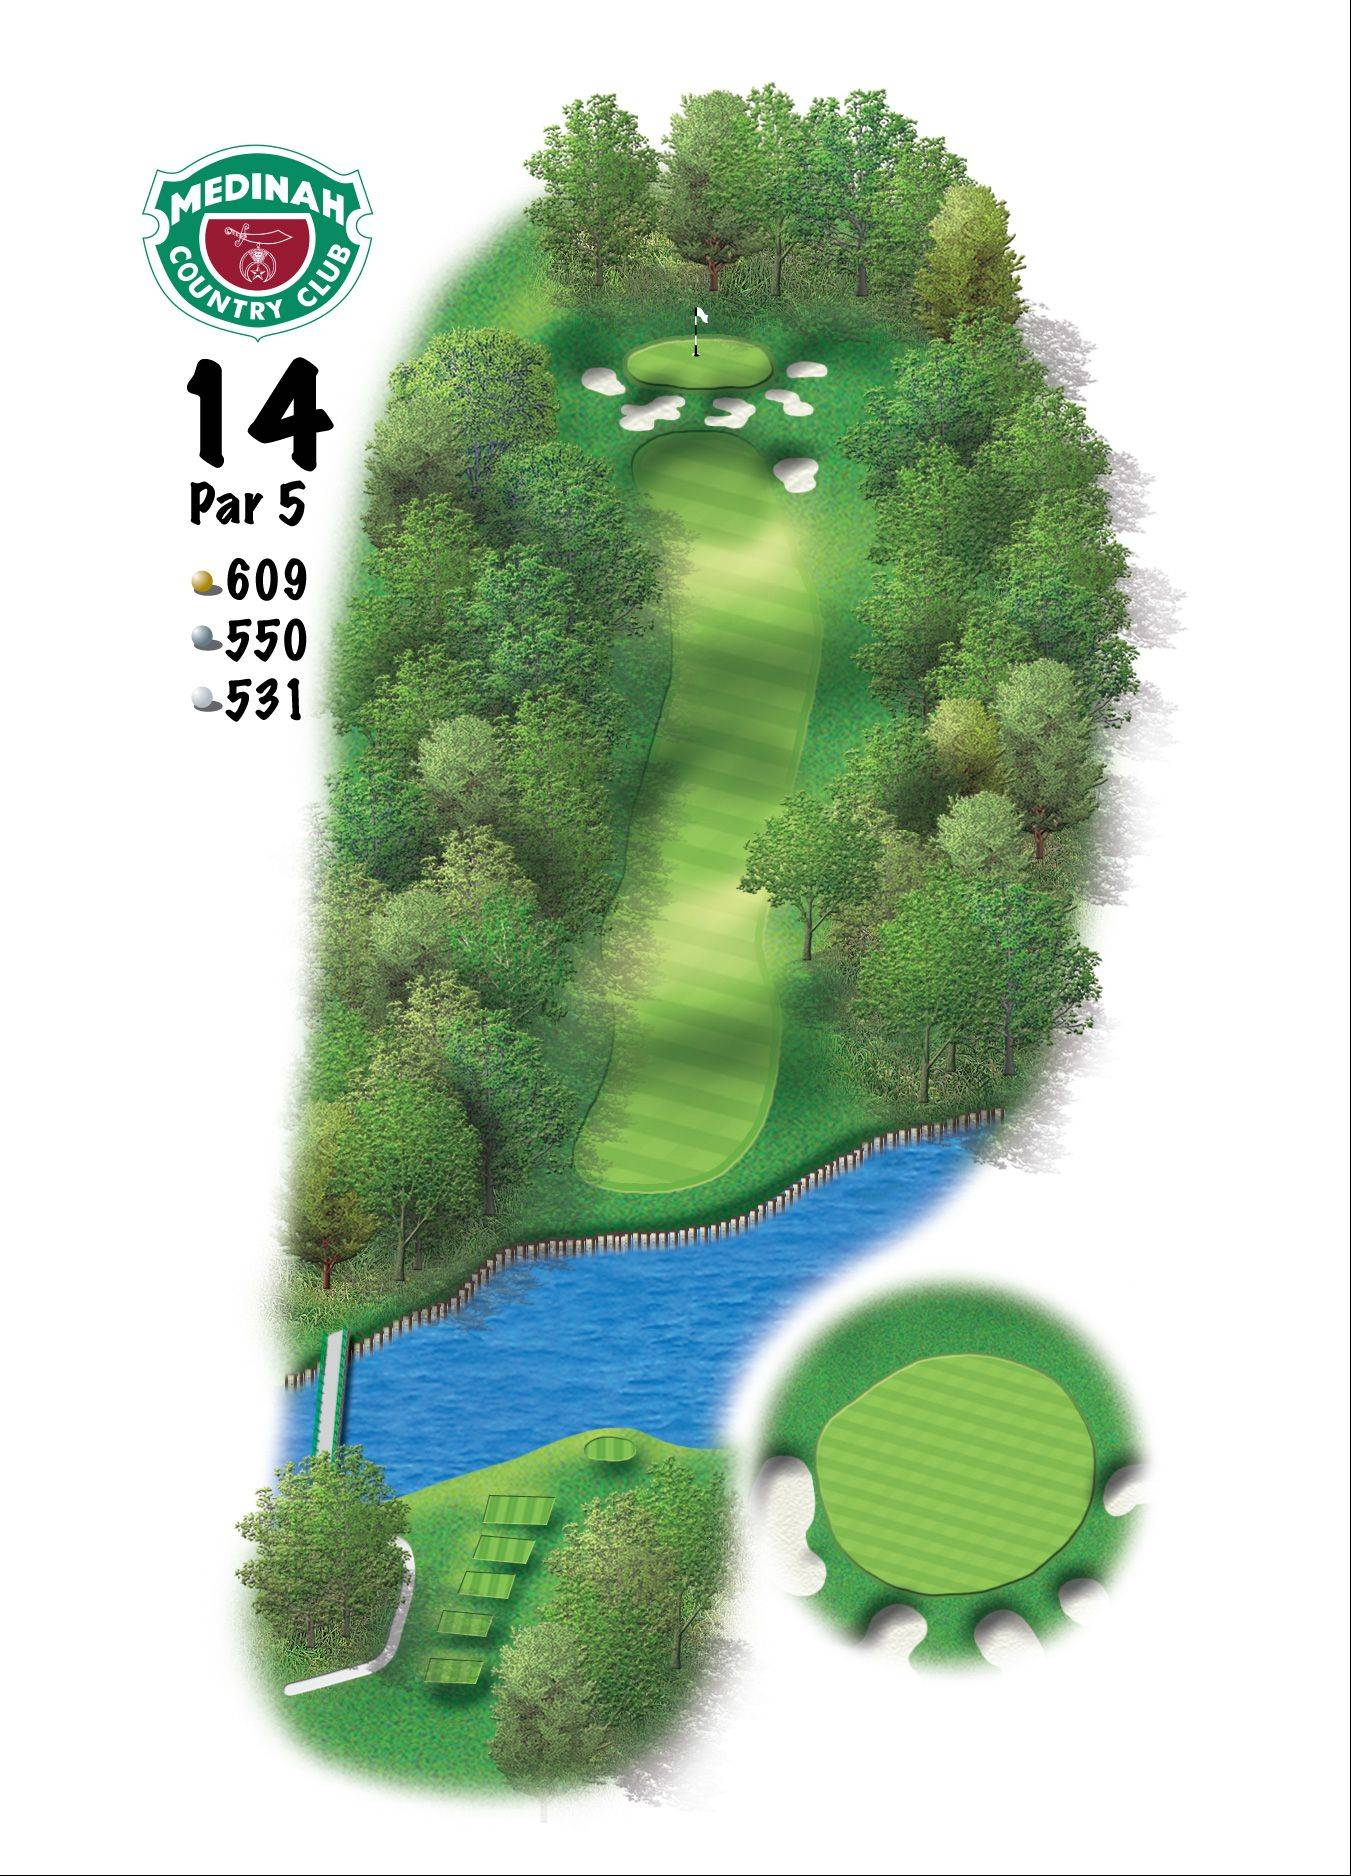 Hole 14 of the Ryder Cup course at Medinah. 609 yards/557 meters, Par-5, The longer players have the advantage here if they can get the ball to the top of the hill. From there they will have a long iron or fairway metal into a green that is well guarded by bunkers and slopes significantly from back-to-front. It is hard to get the ball close on the third shot because of the slope in the green.